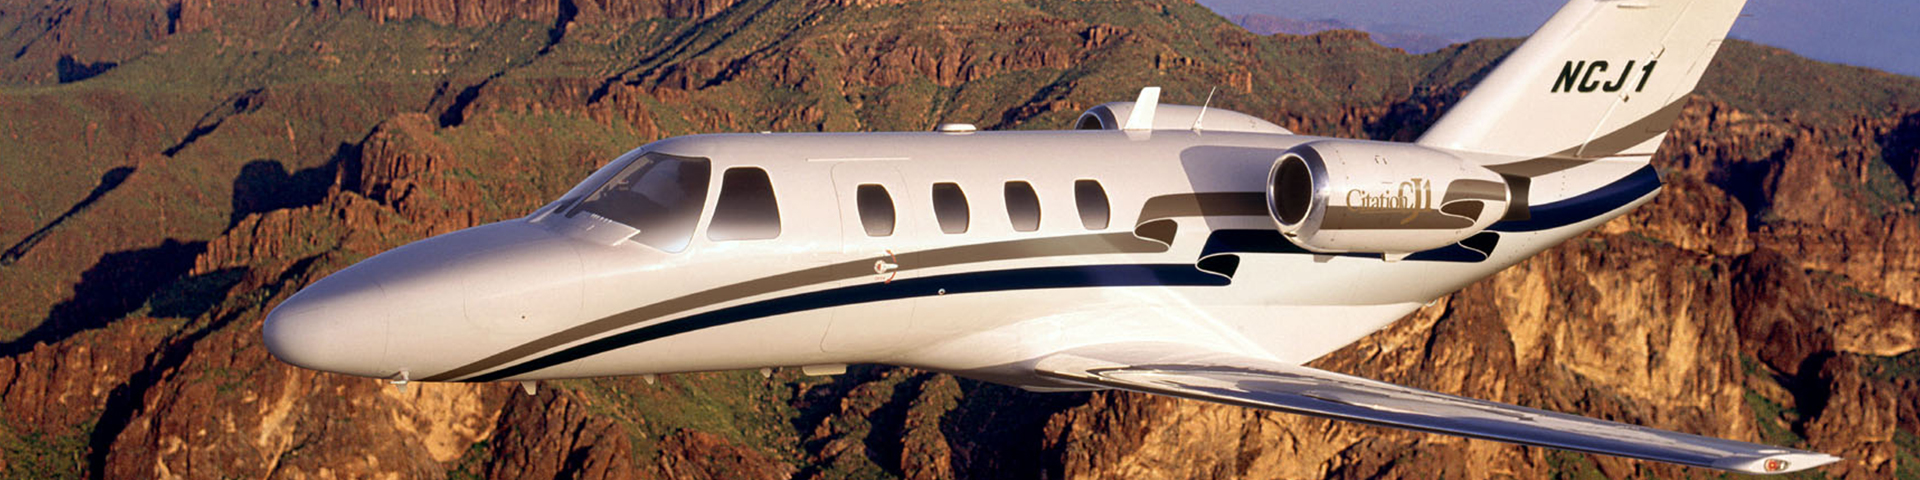 Citation CJ11 - Citation CJ1 Private Jet